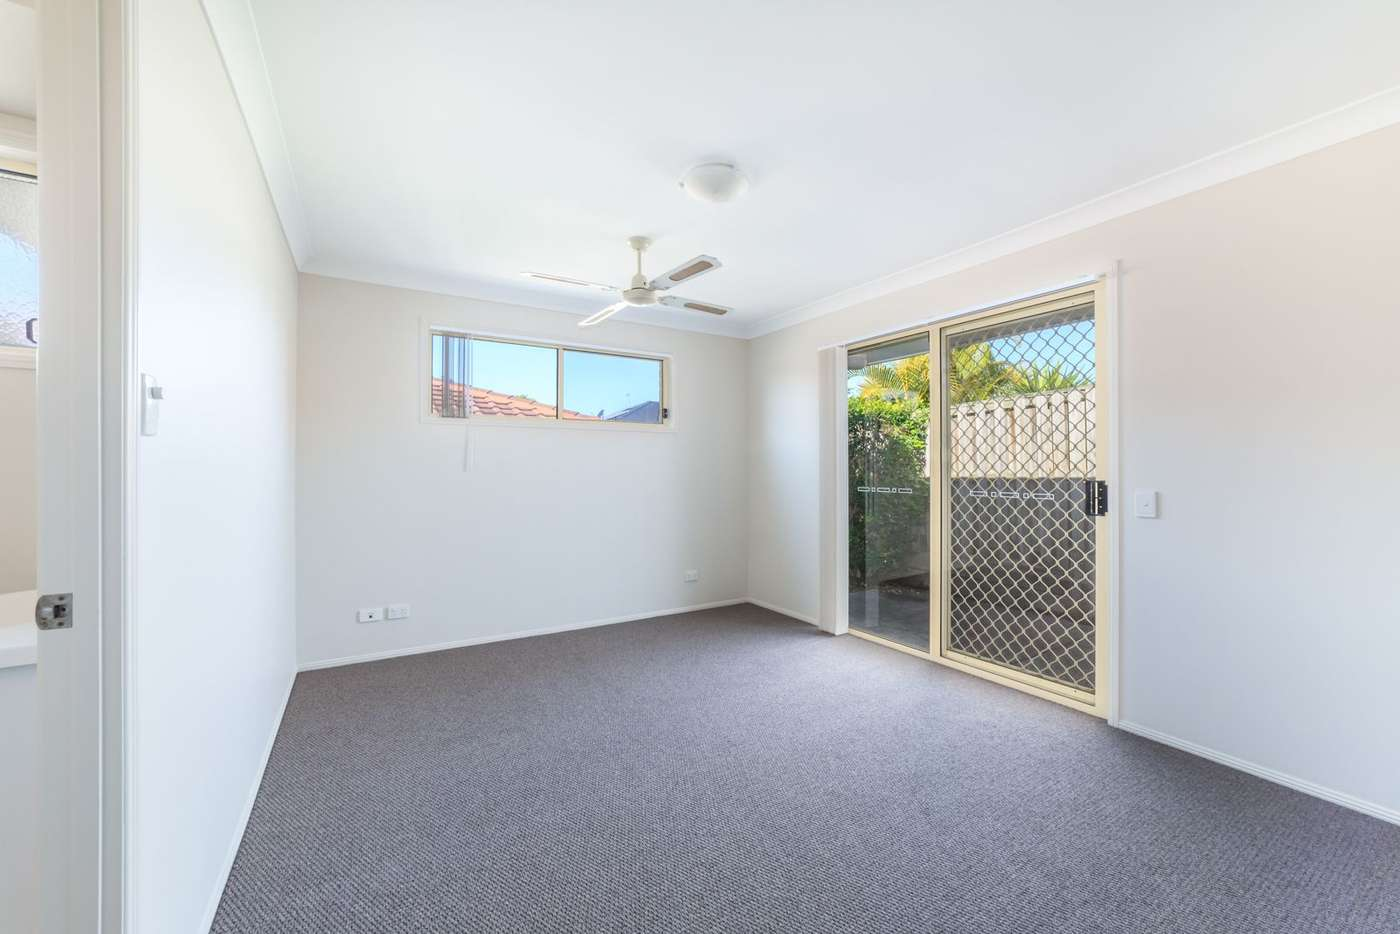 Seventh view of Homely house listing, 7 Carino Court, Merrimac QLD 4226